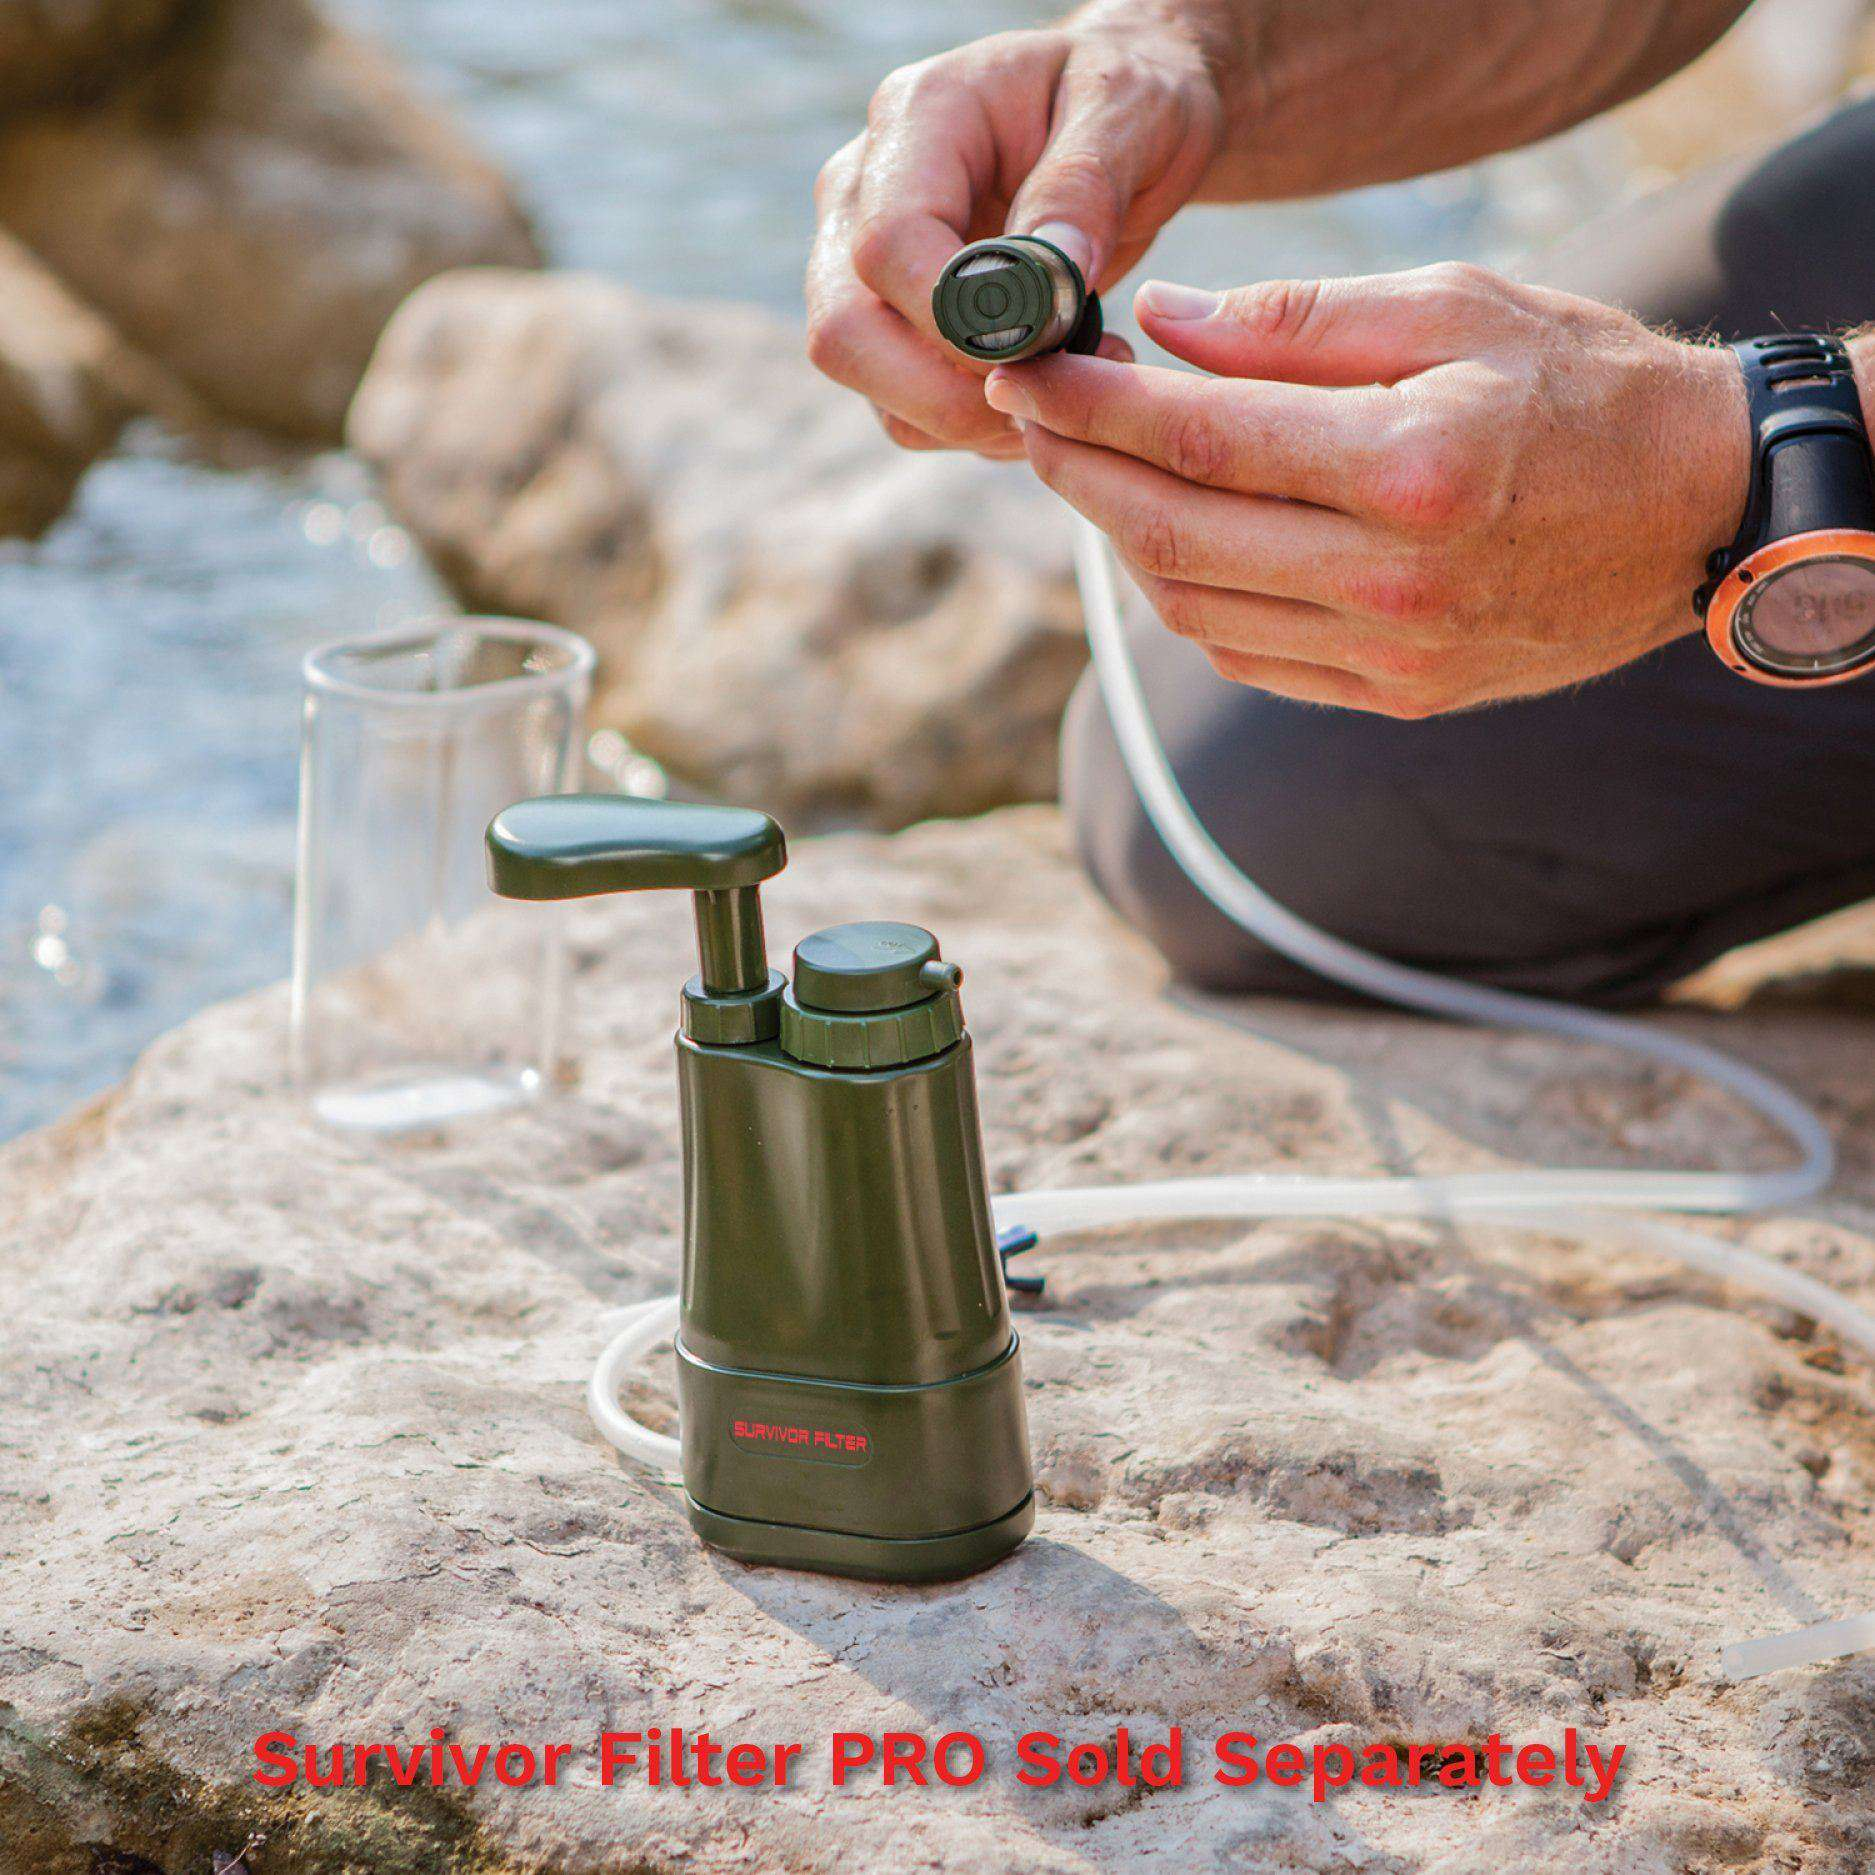 Survivor Filter PRO Ultra Filter Pre-Filter Replacement Compatible With Electri